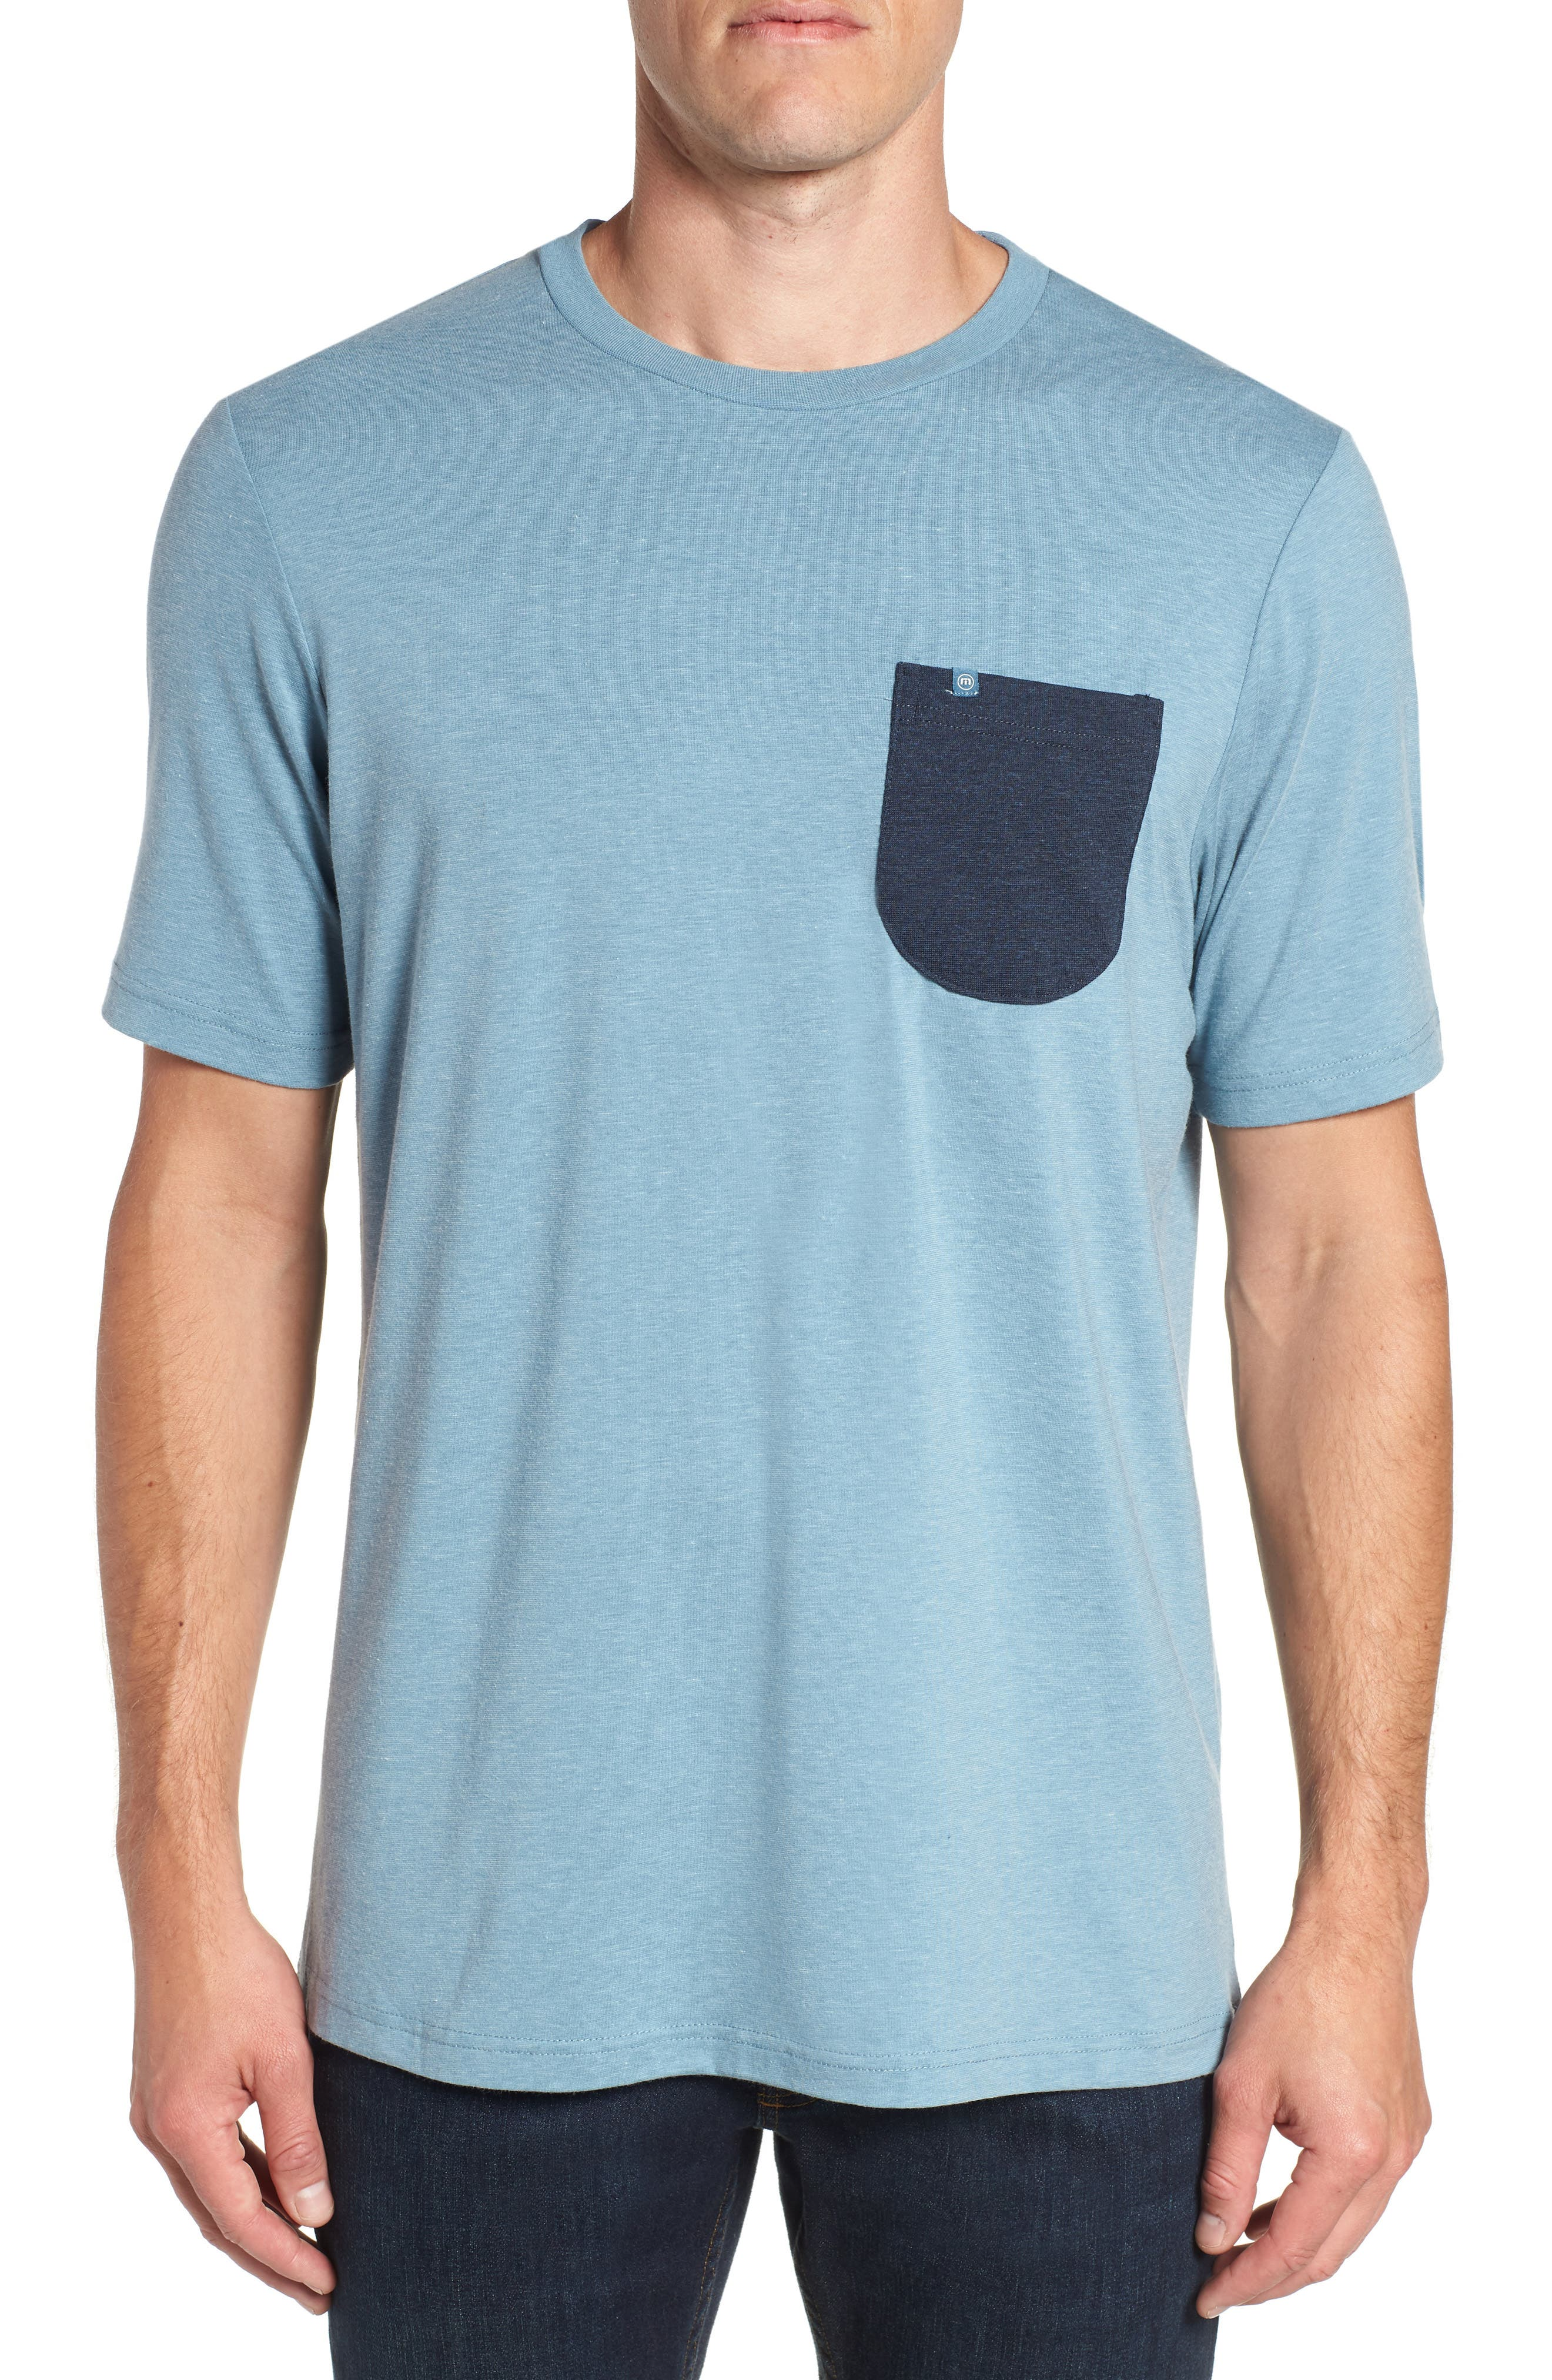 Simmer Down T-Shirt,                         Main,                         color, HEATHER BLUE STONE